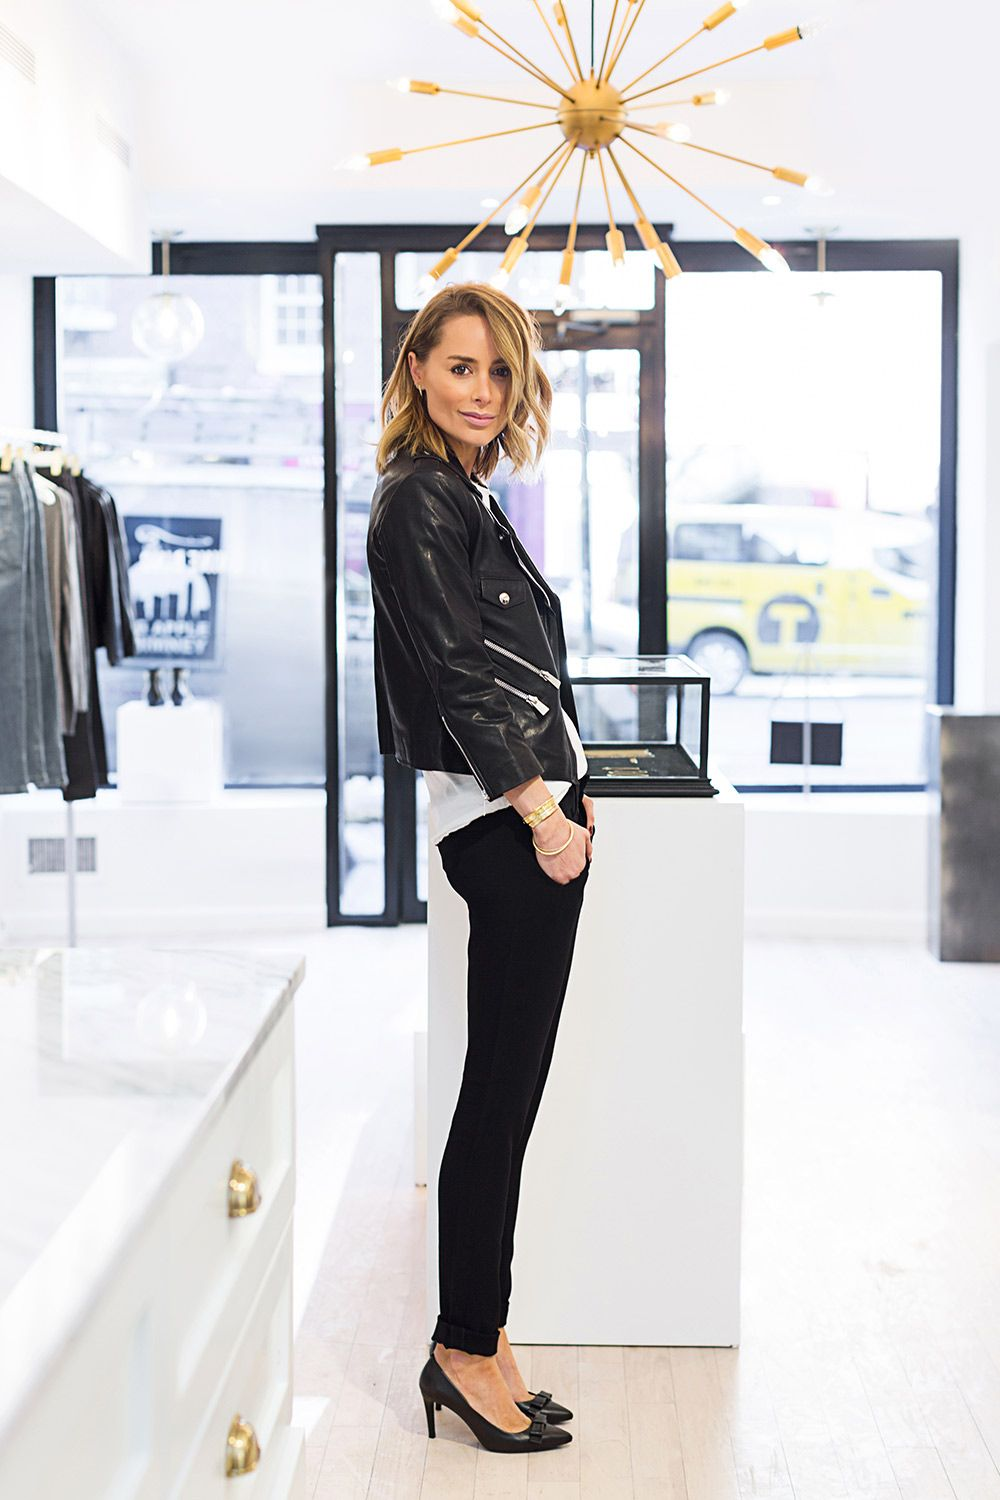 Tales in Retail: Curve Decamps to Bond Street with Biggest Boutique Yet Tales in Retail: Curve Decamps to Bond Street with Biggest Boutique Yet new images